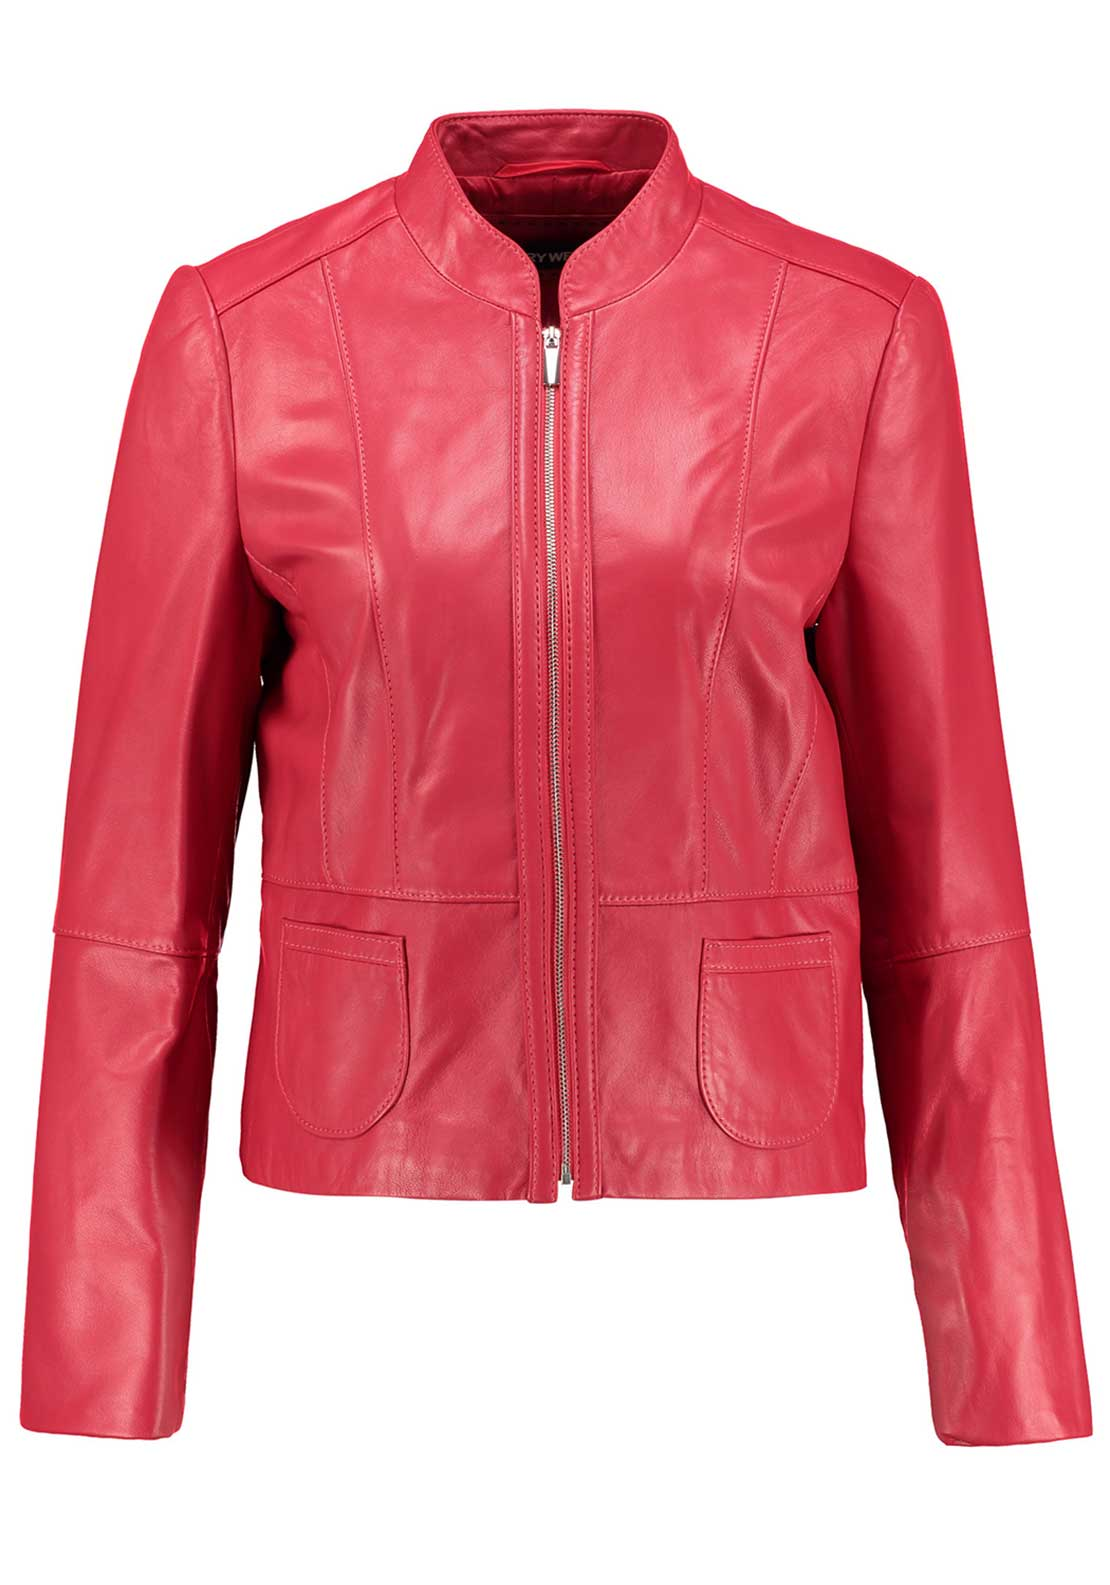 Gerry Weber Genuine Leather Jacket, Red